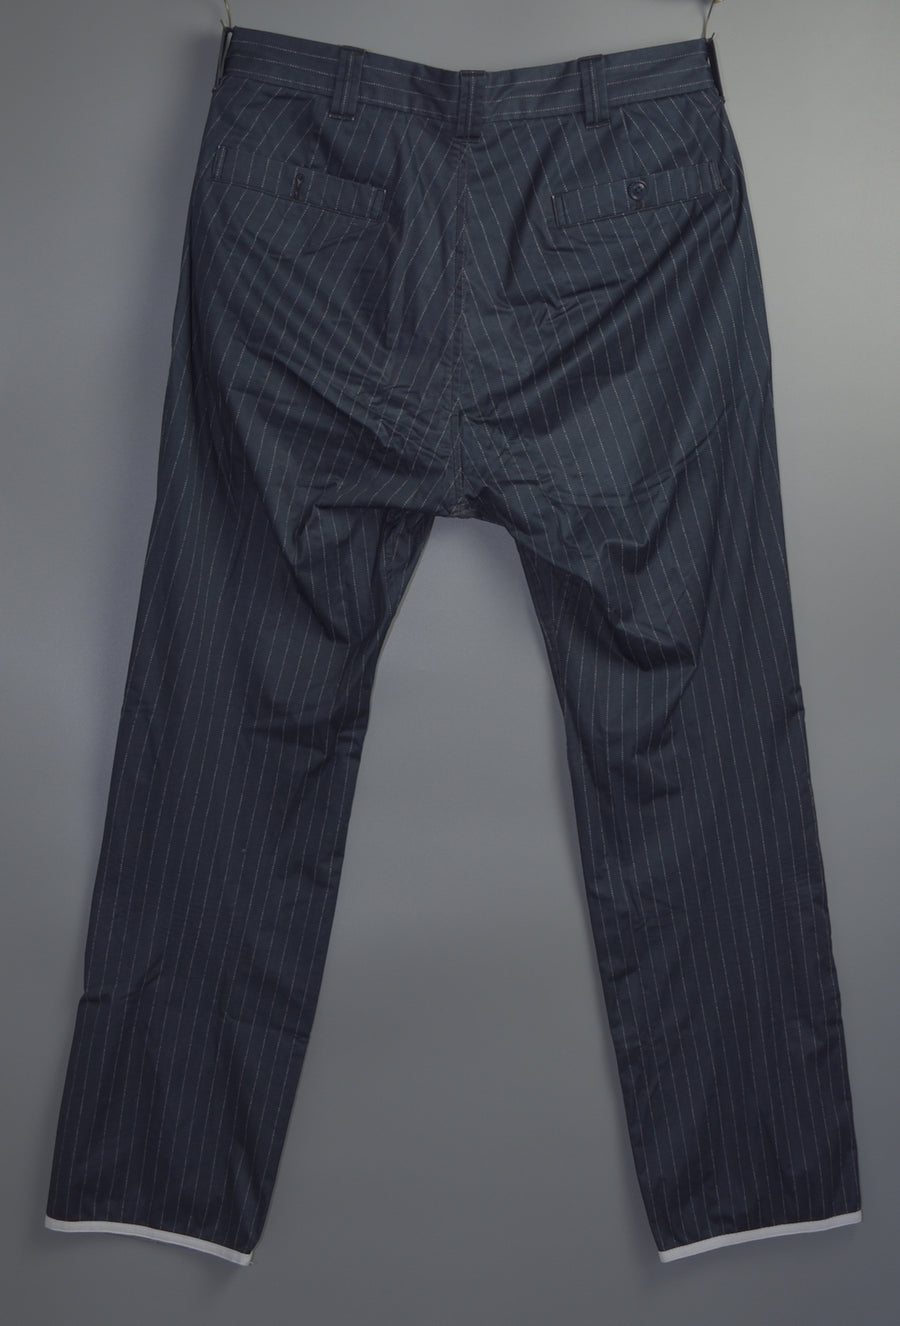 nanamica / Strype Outdoor Slacks Pants